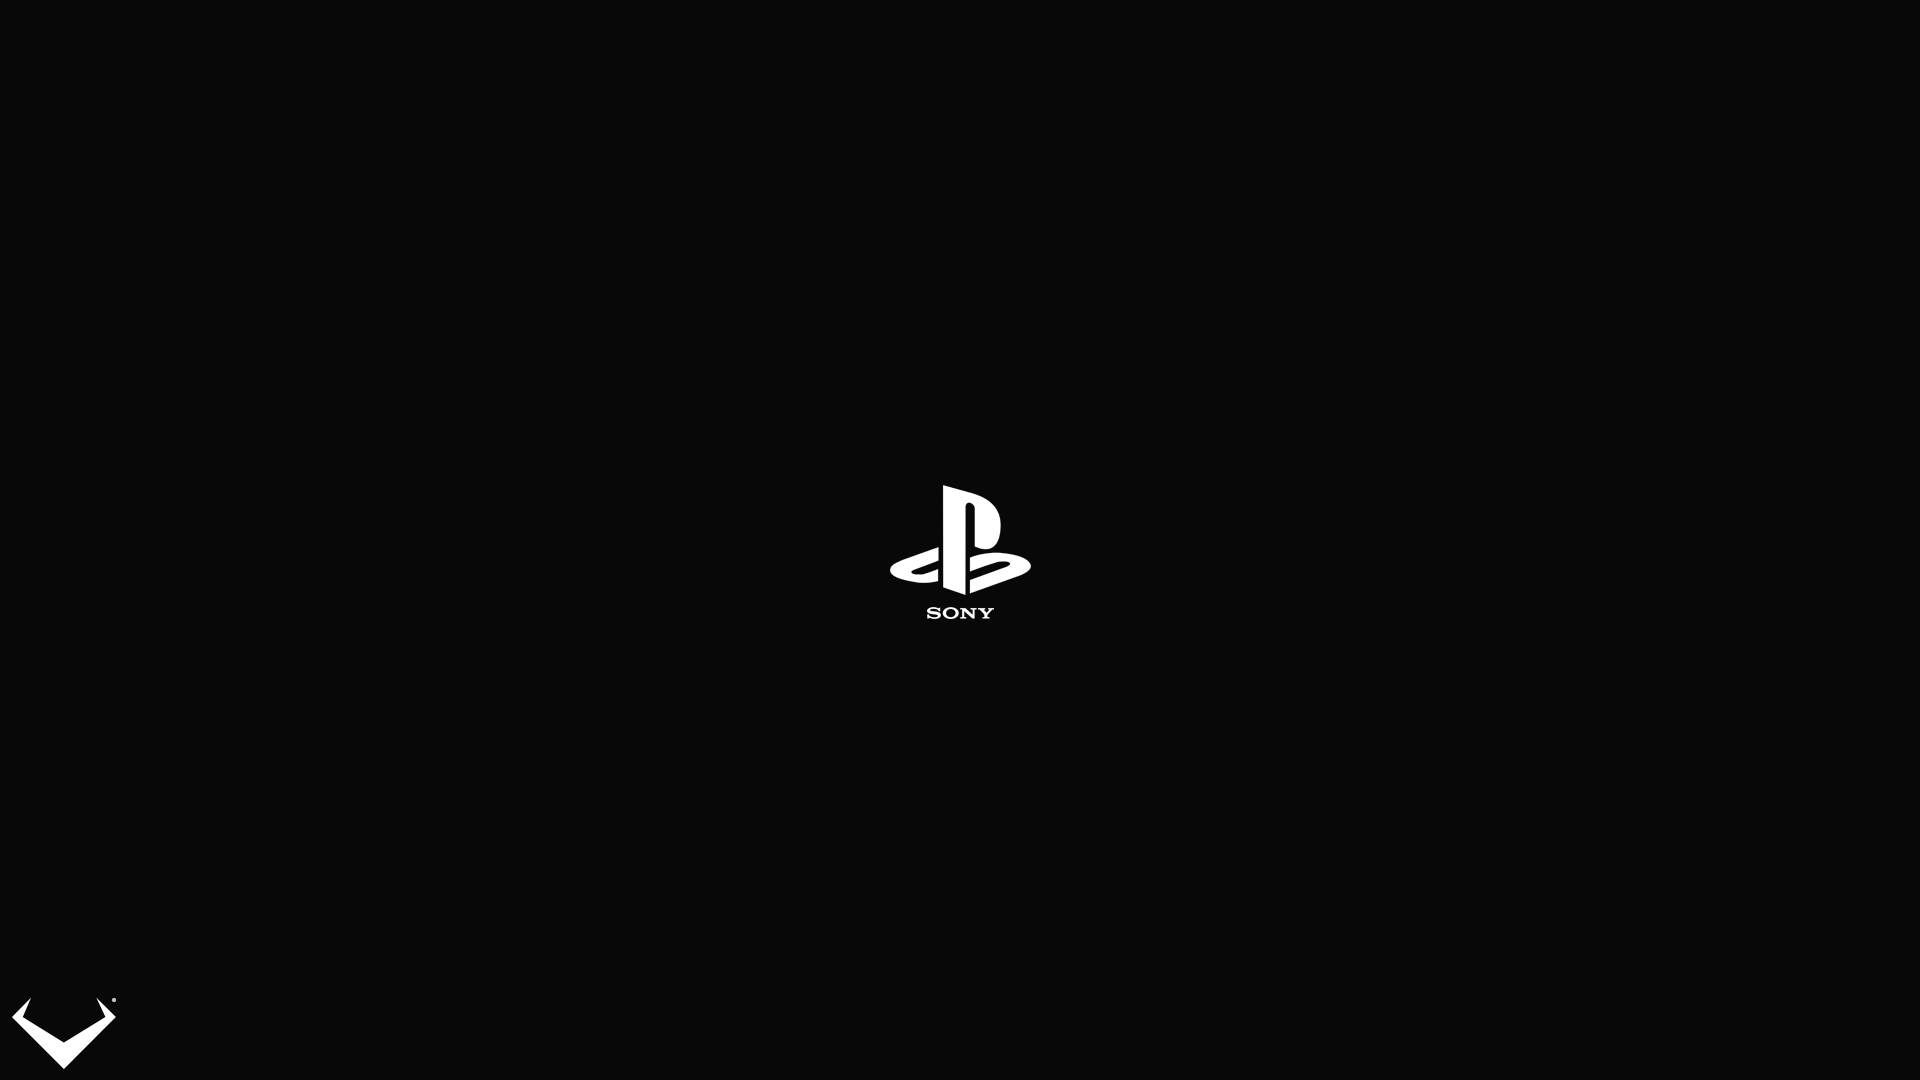 playstation wallpapers hd - wallpaper cave